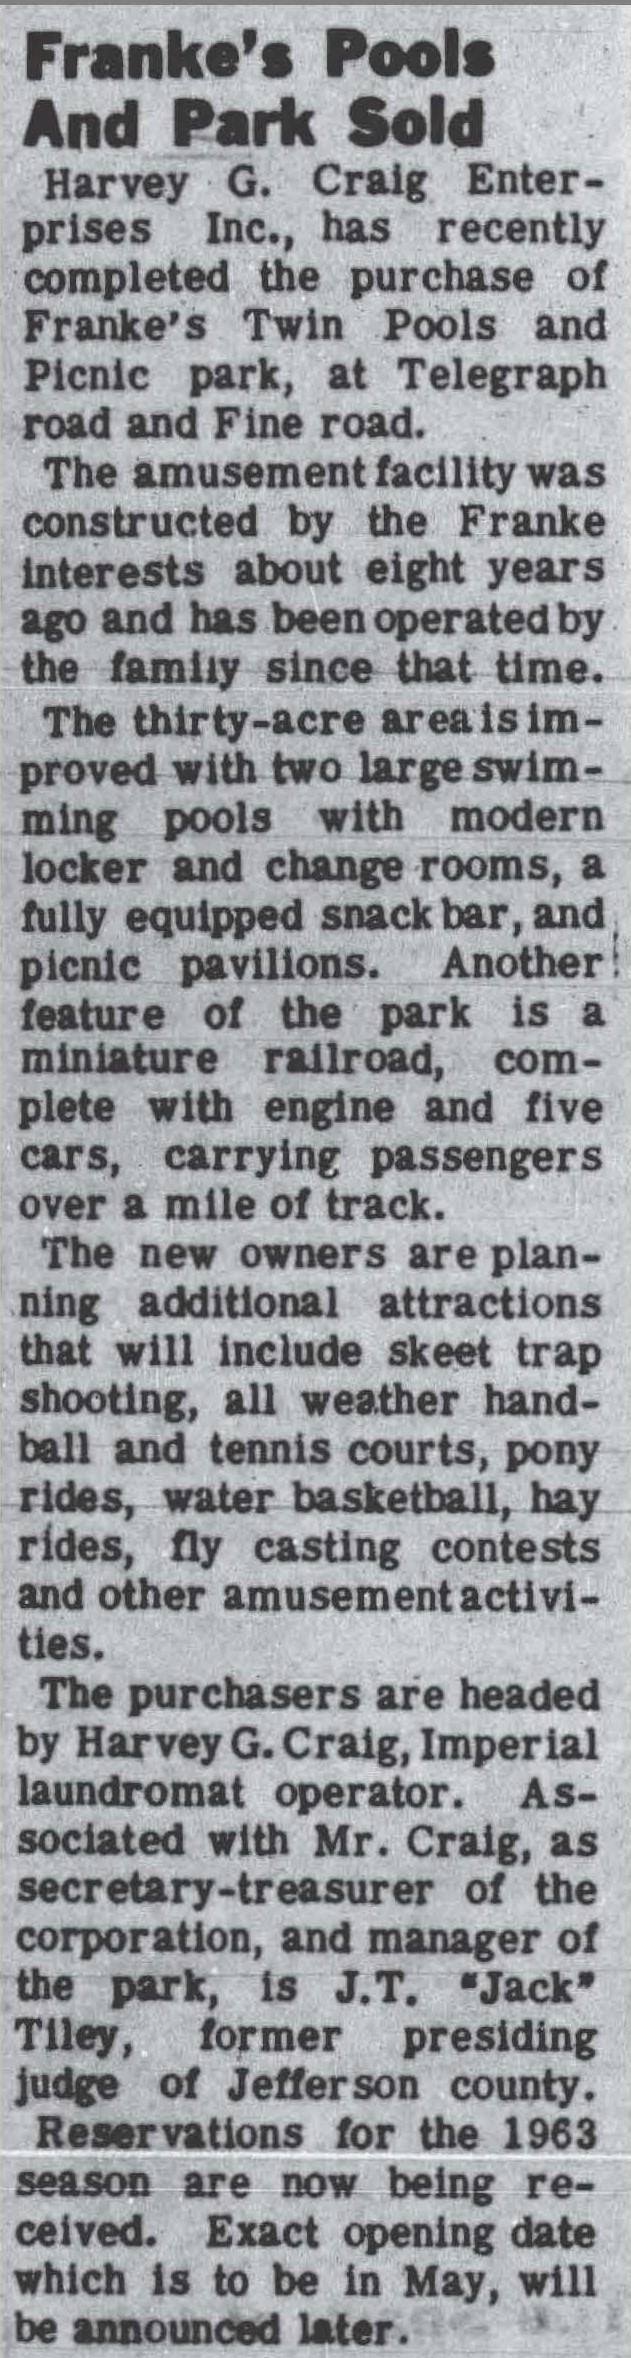 Newspaper Showing Purchase by Harvey Craig of Franke's Twin Pools and Picnic Park